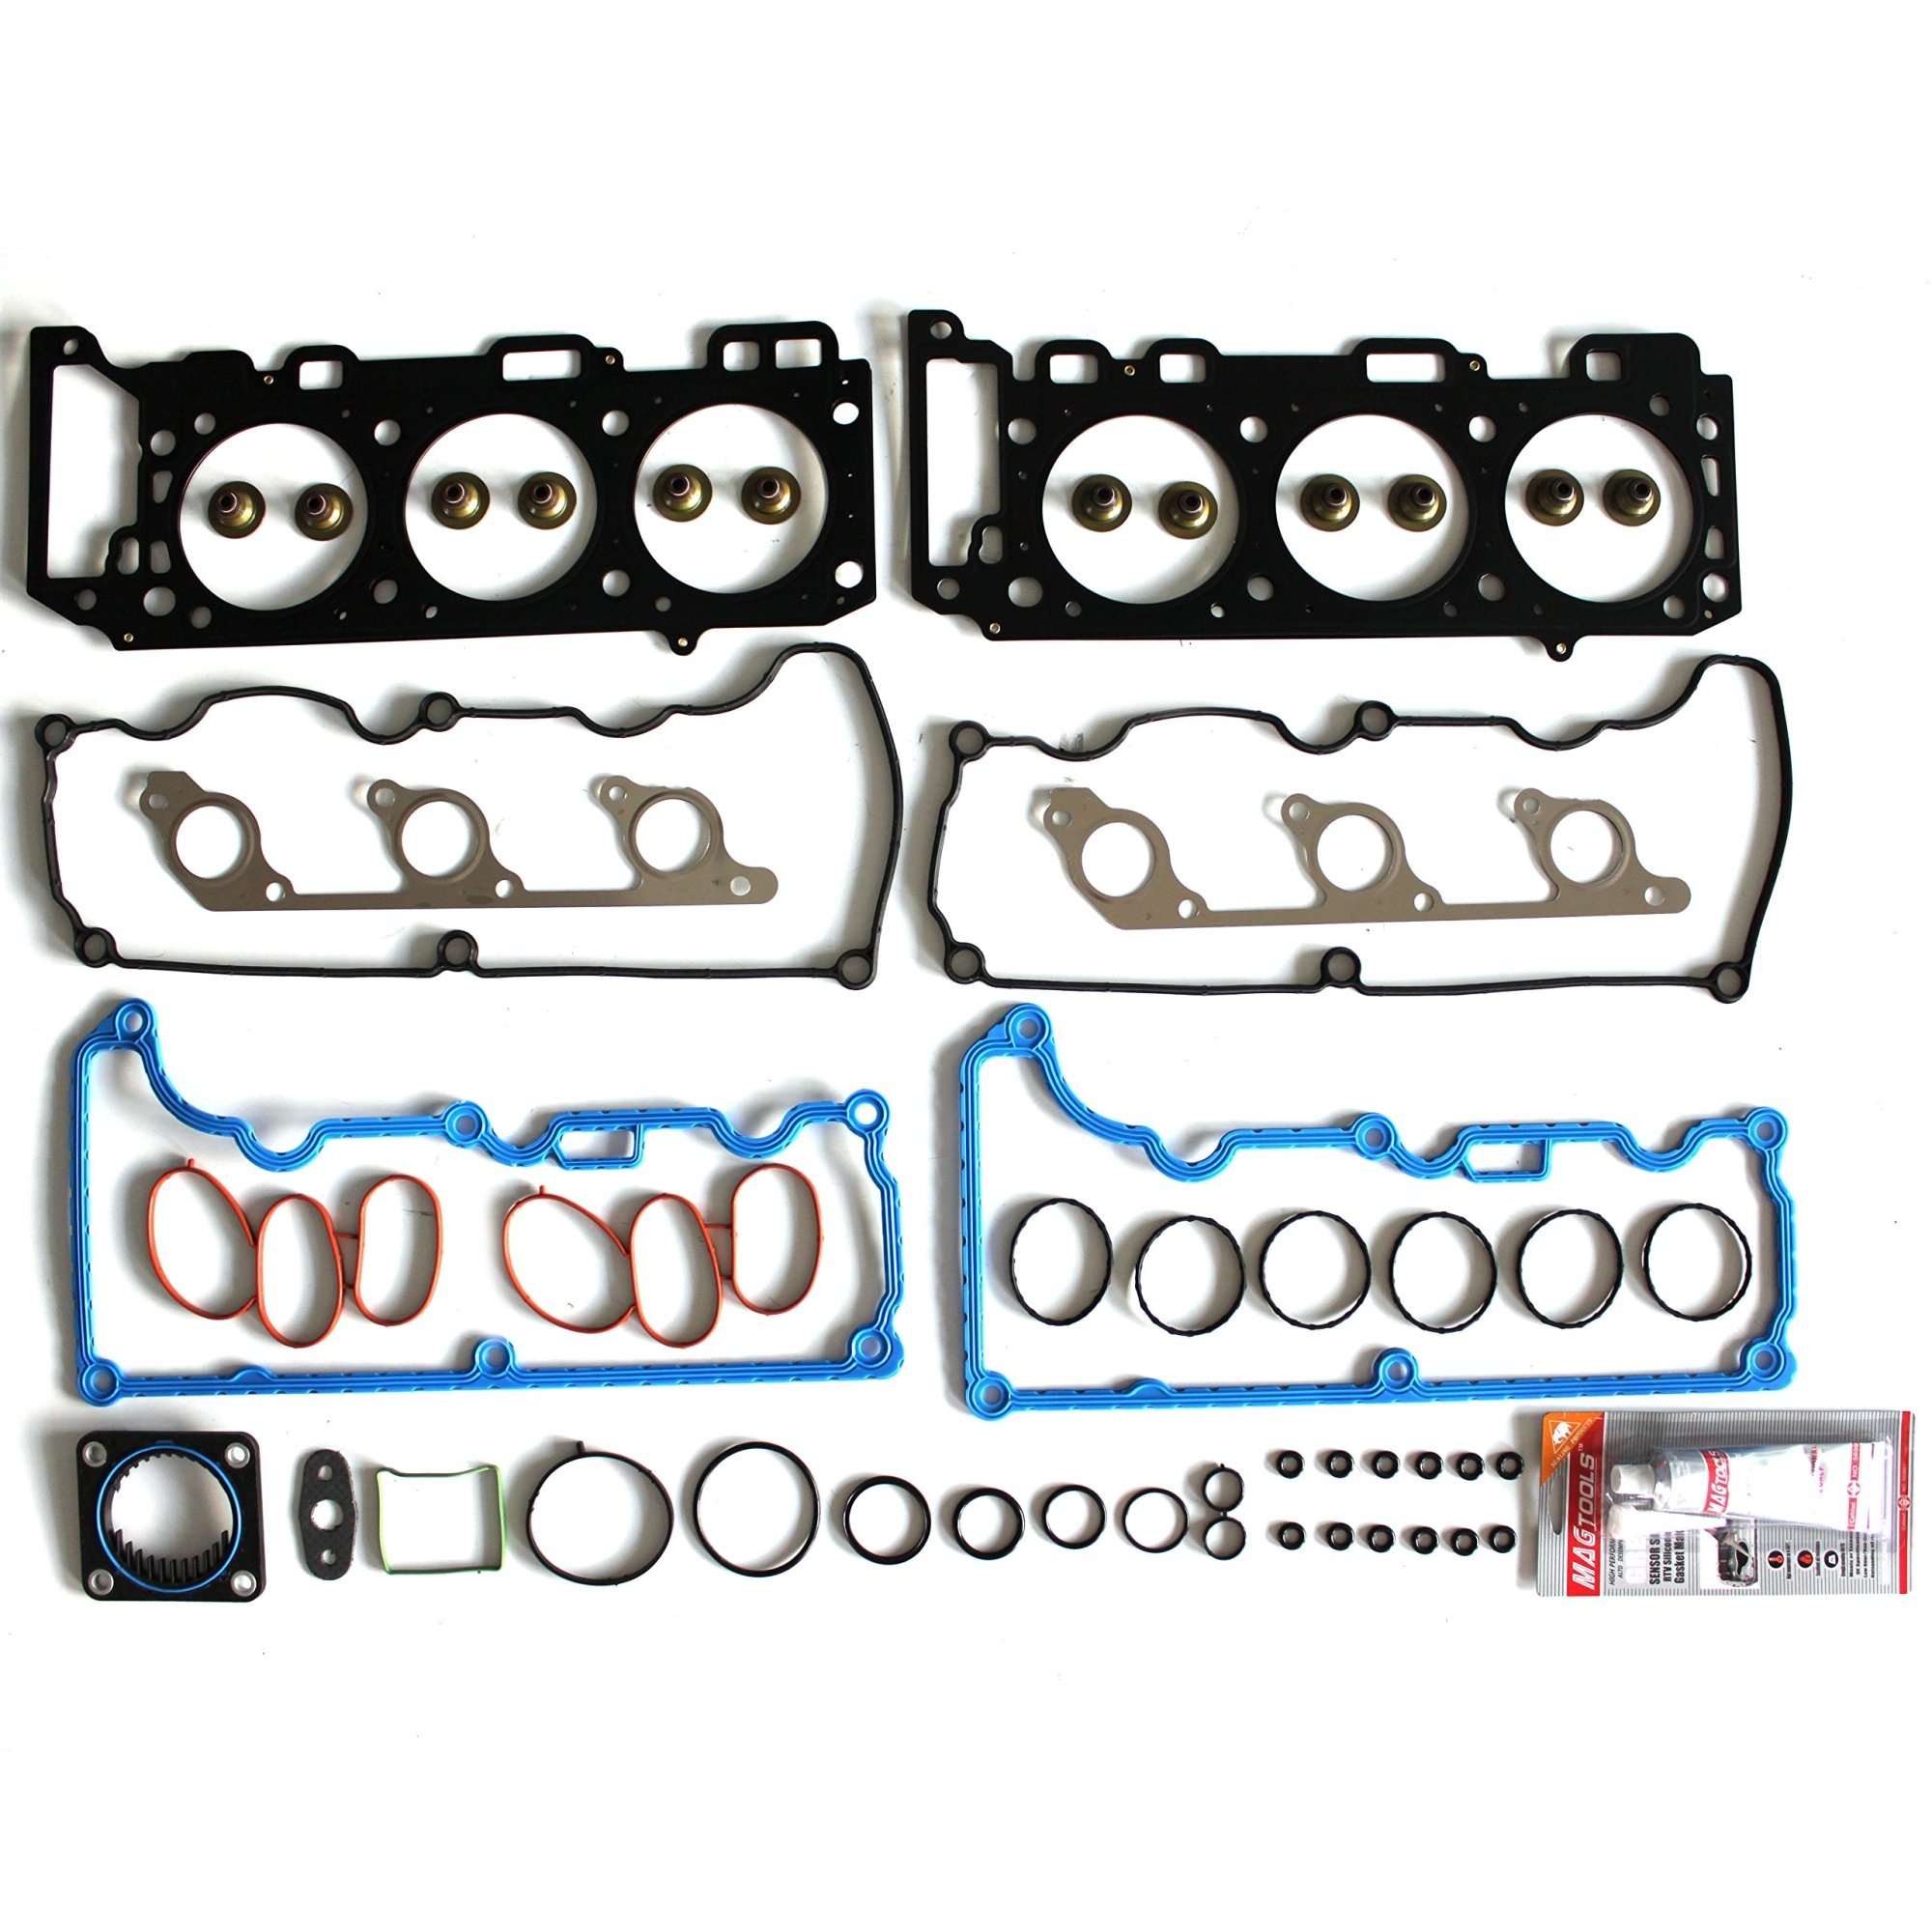 hight resolution of get quotations scitoo head gasket kit for 1997 2007 ford explorer sport trac explorer mountaineer 4 0